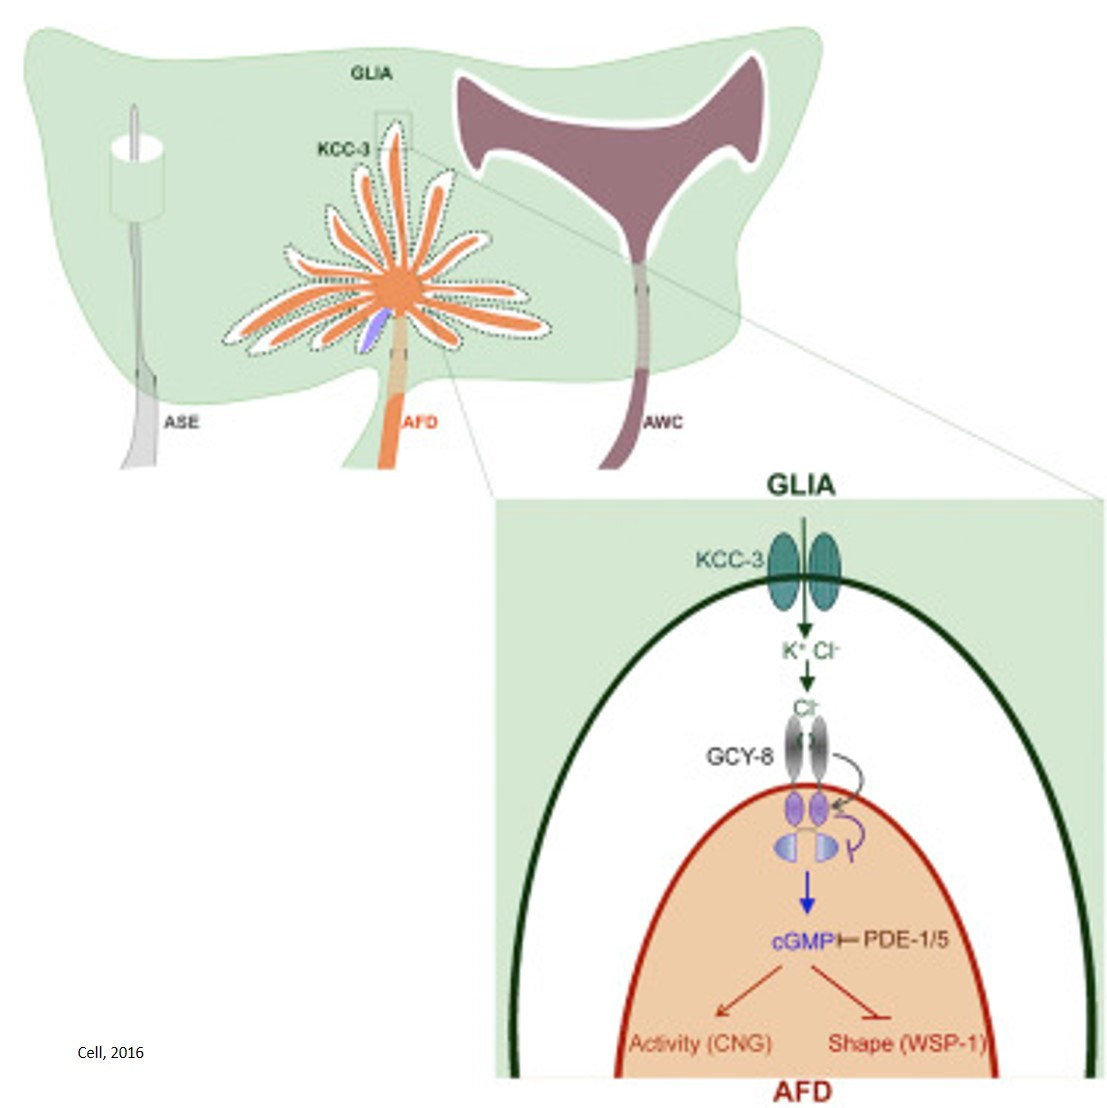 Glial cells control shape of nerve endings